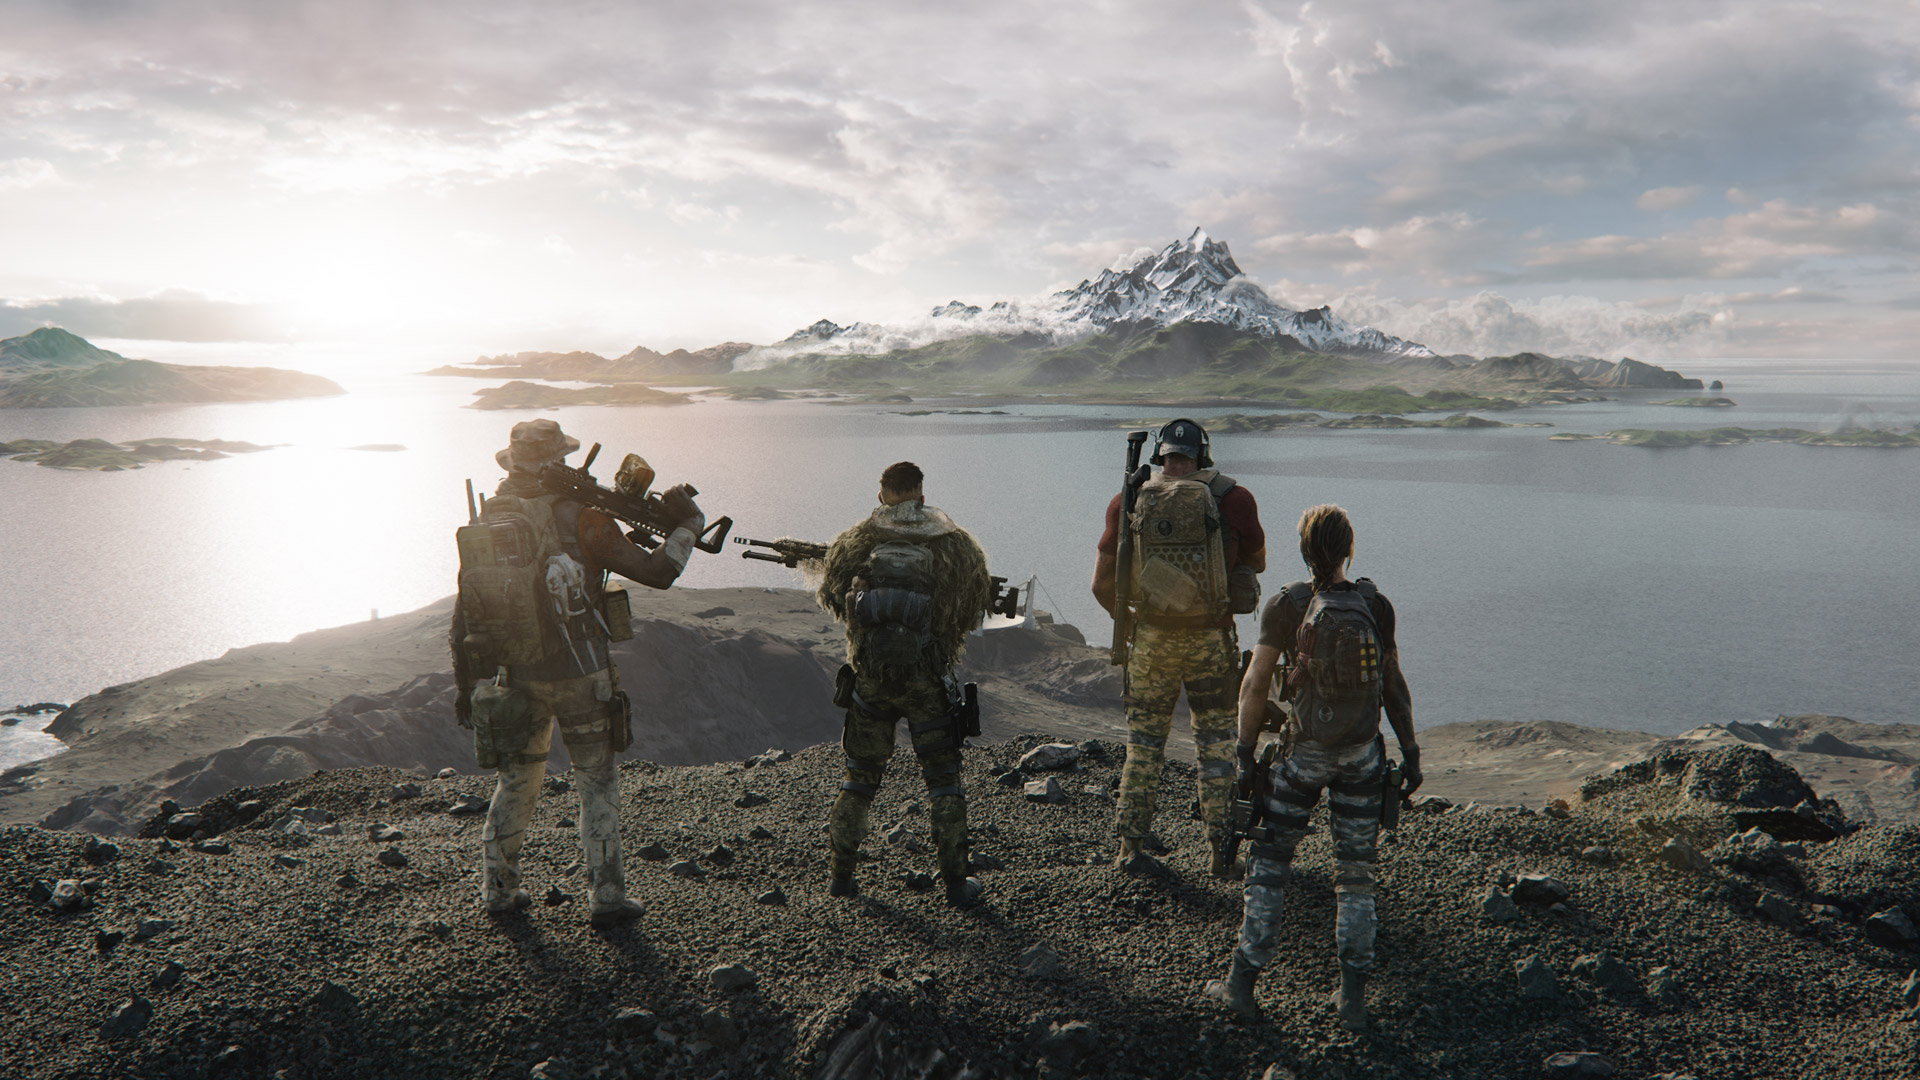 Free Ghost Recon Breakpoint Wallpaper in 1920x1080